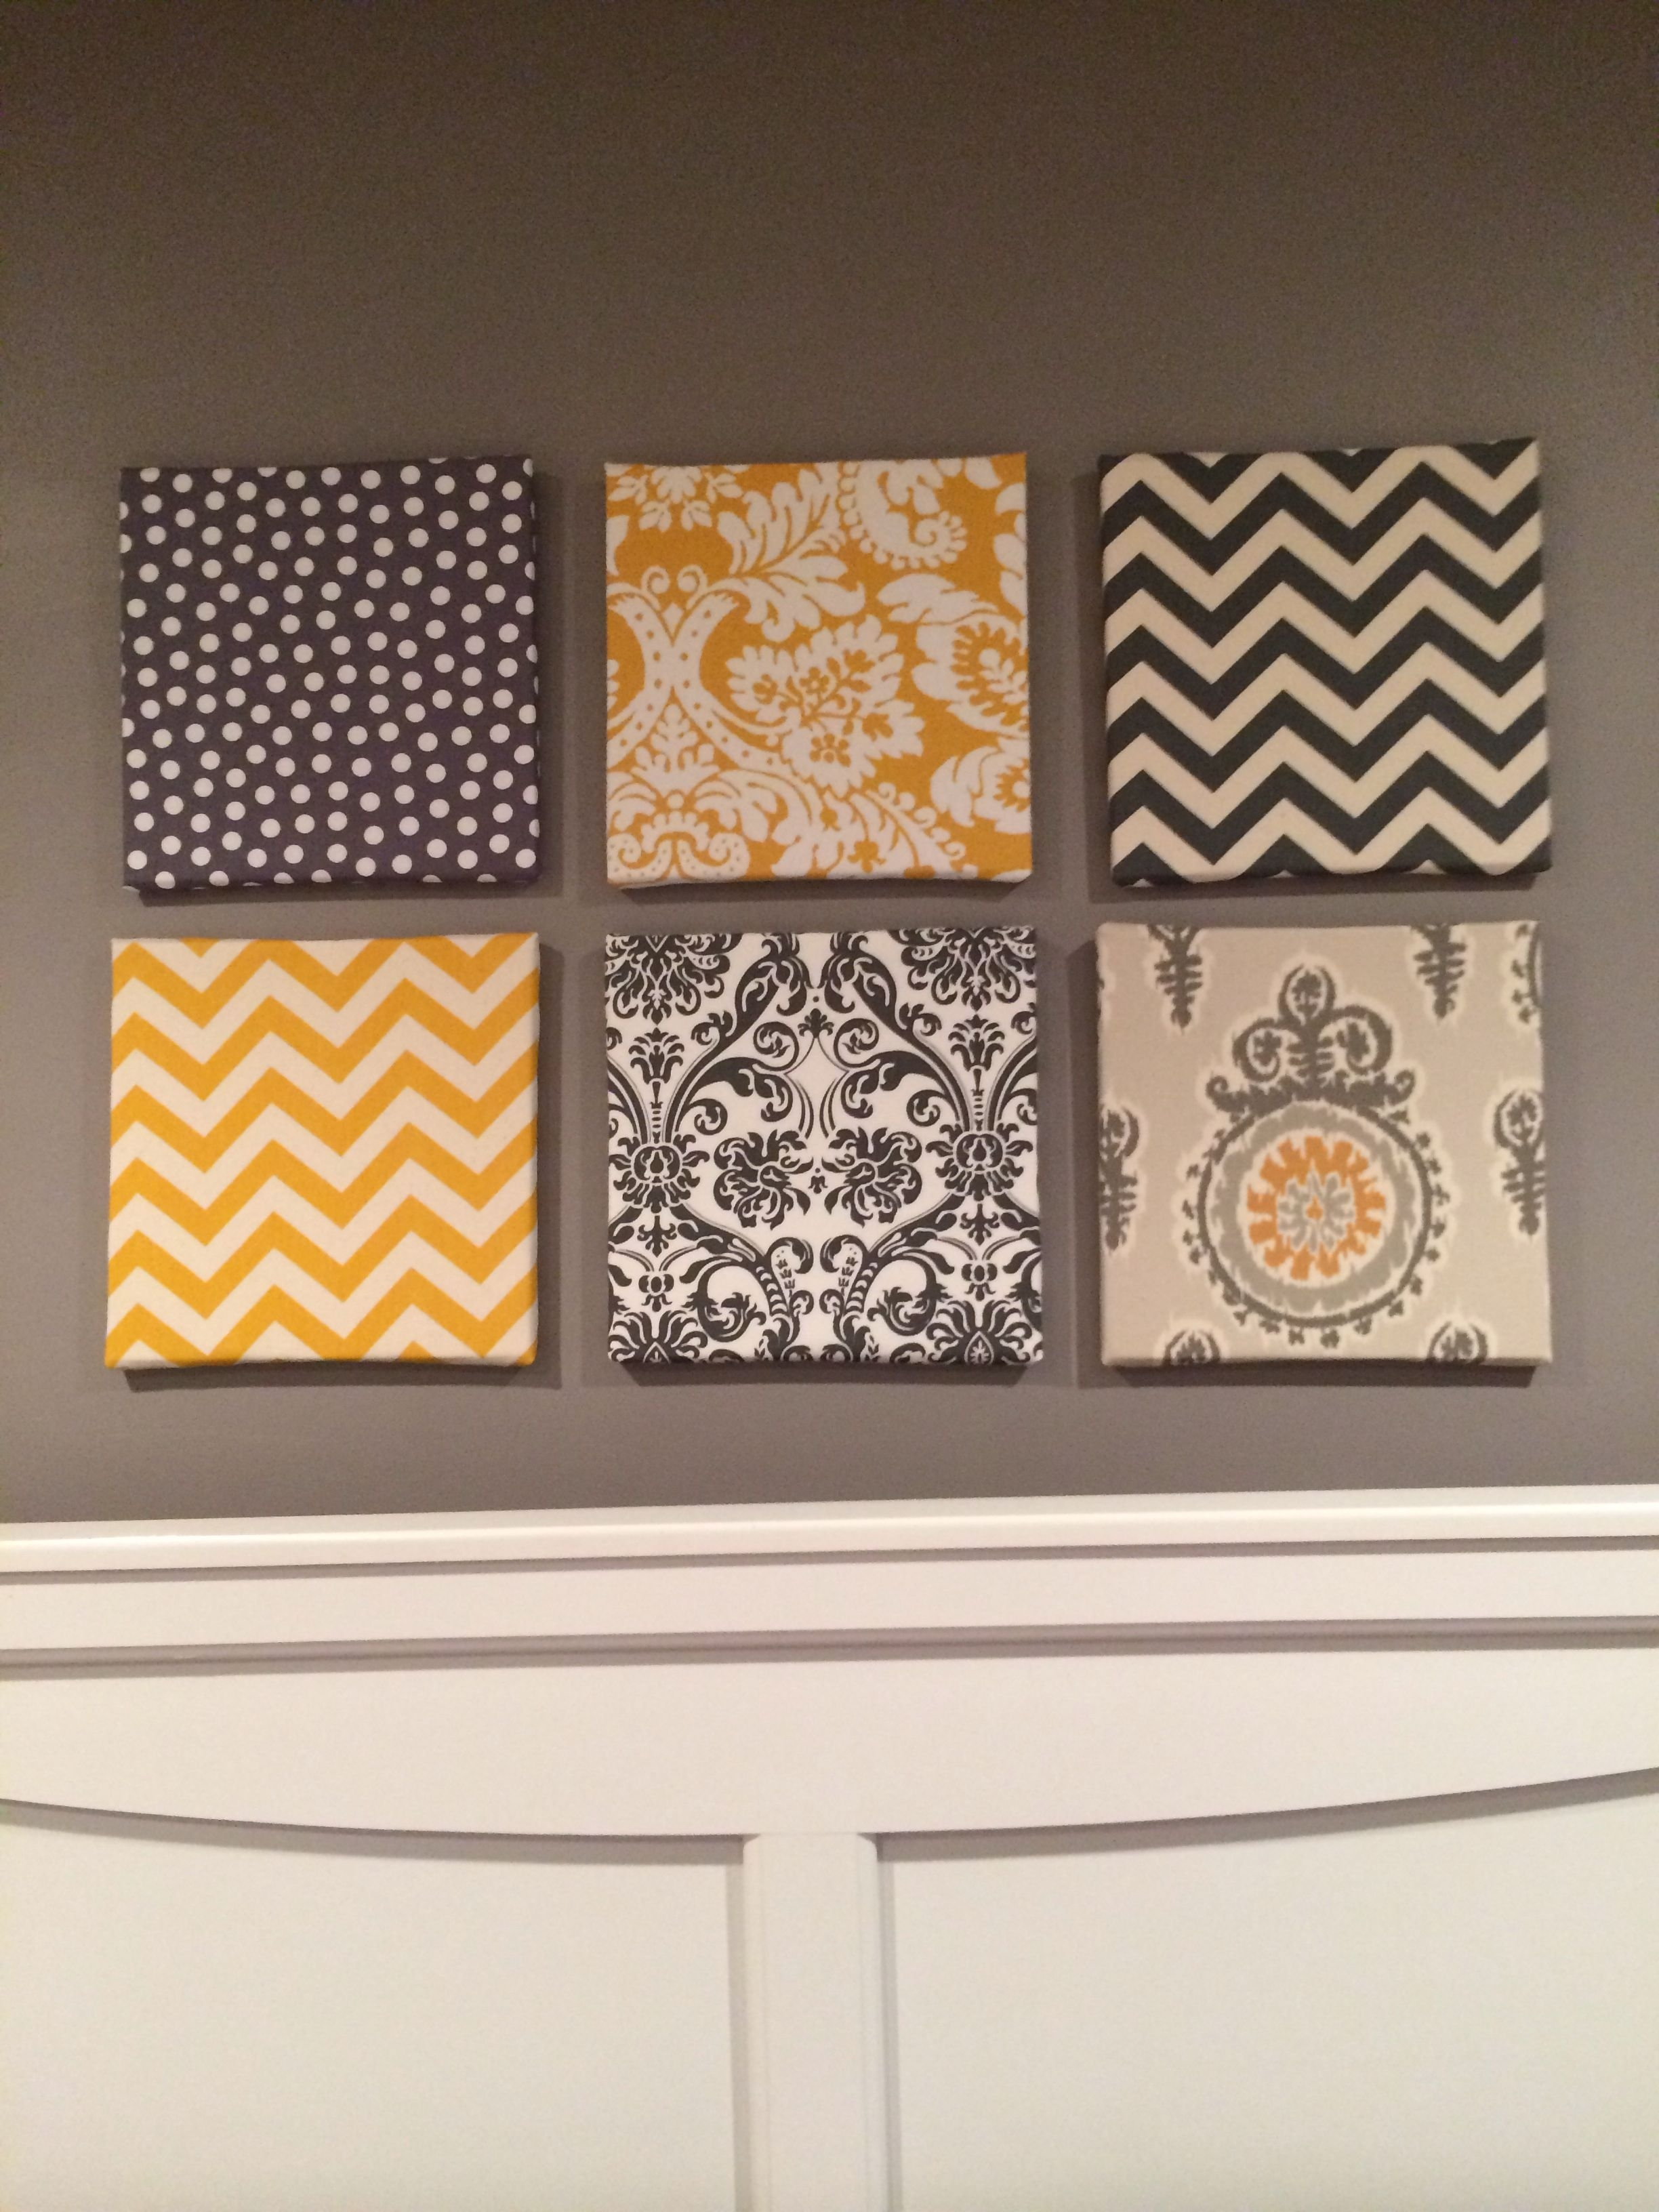 My Fabric Over Canvas Wall Art For My Gray And Yellow Themed Room With Most Recent Fabric Panel Wall Art With Embellishments (View 15 of 15)